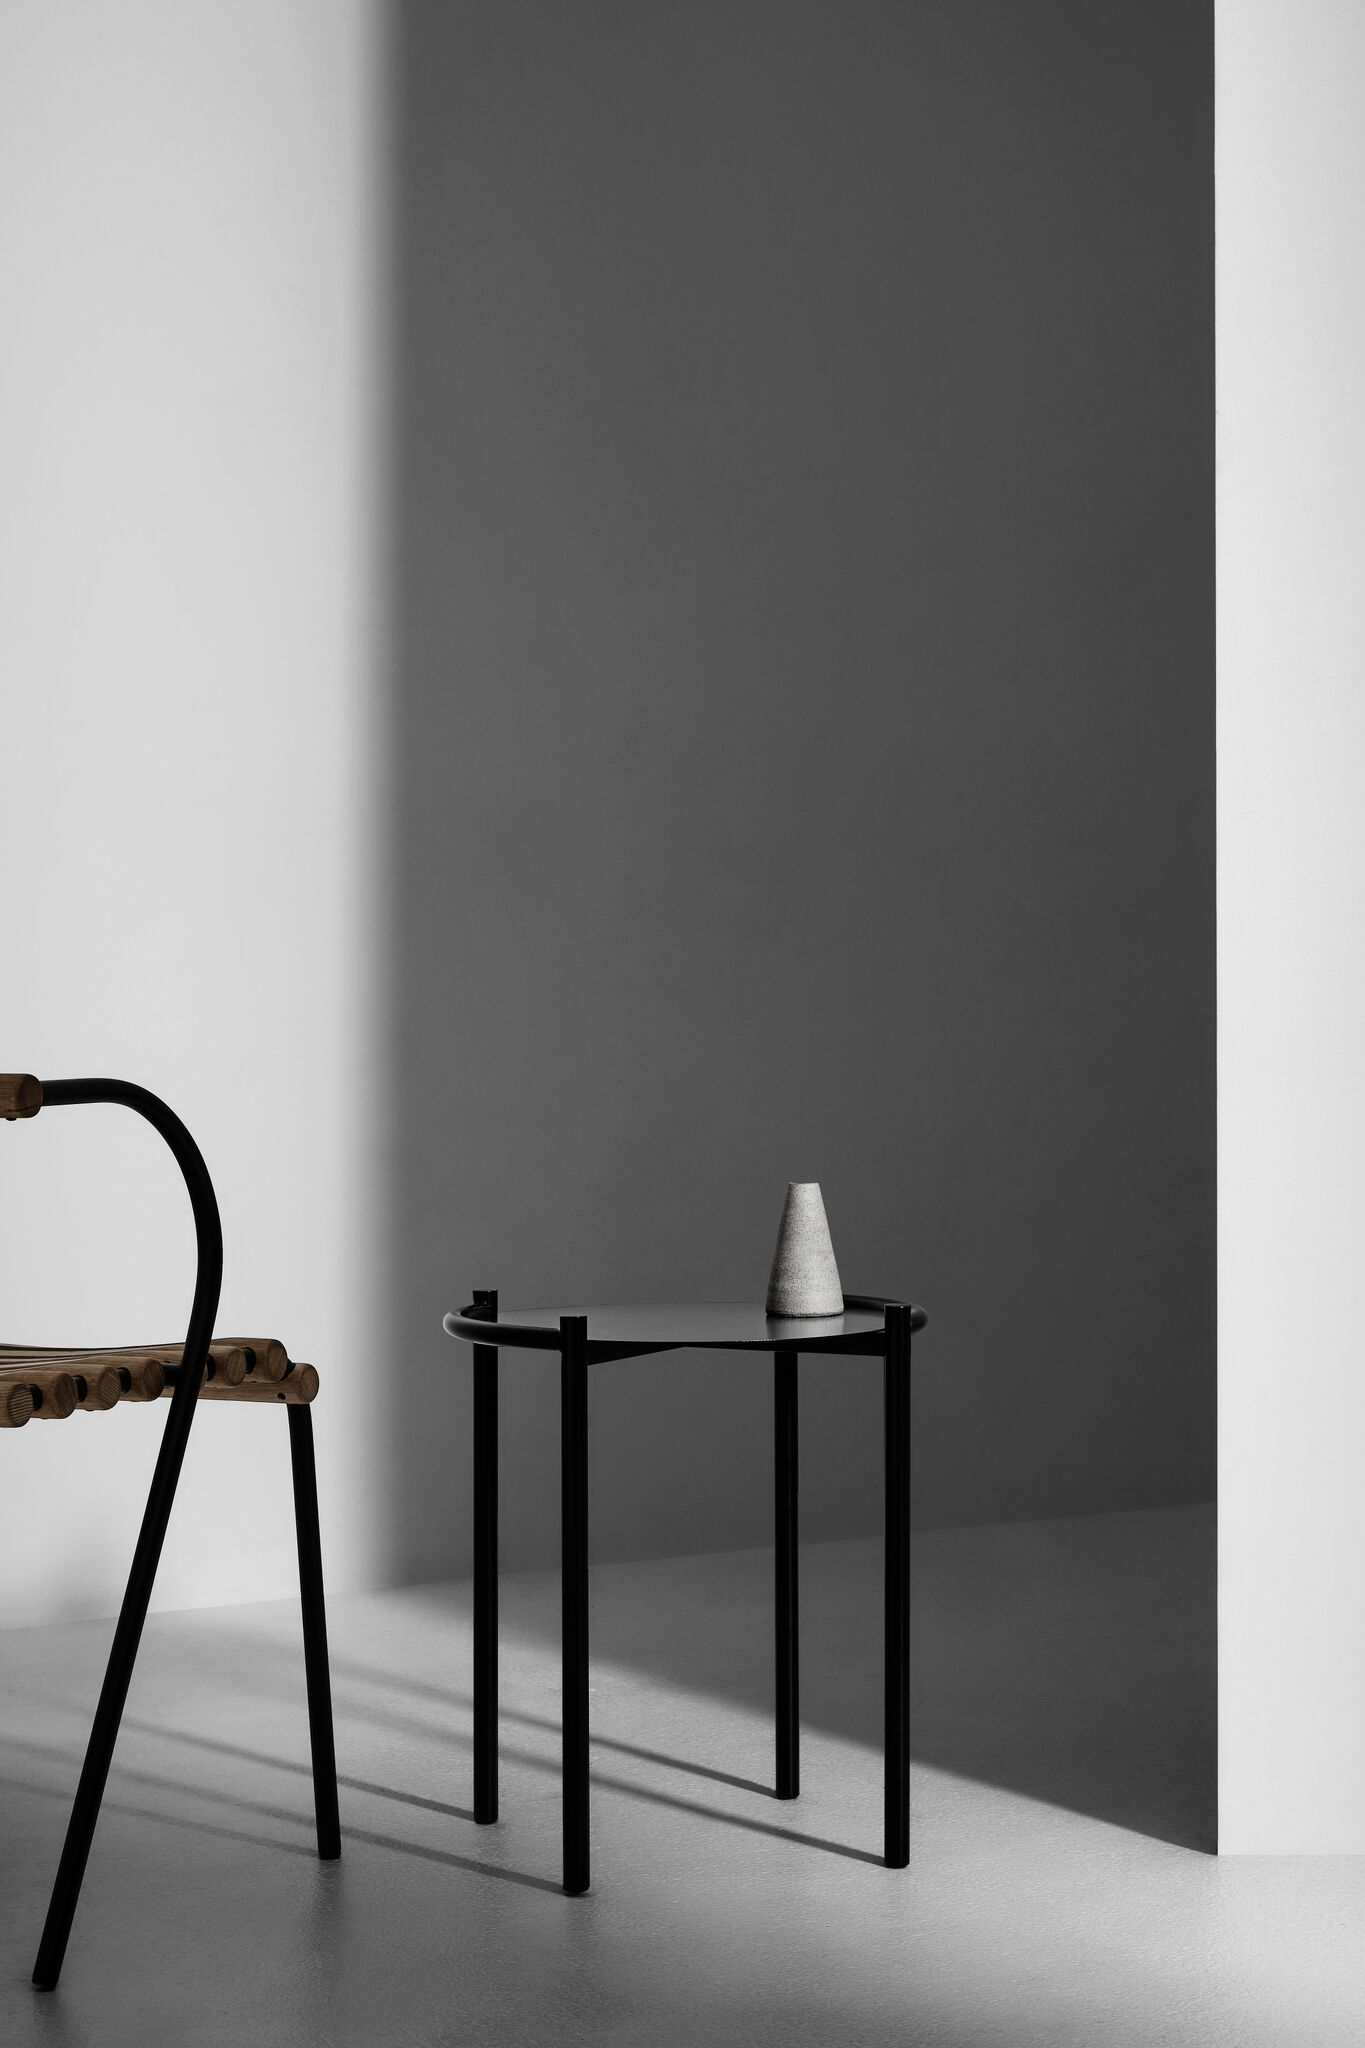 Gallery Of Side Table By Fomu Local Australian Furniture Design Melbourne, Vic Image 2